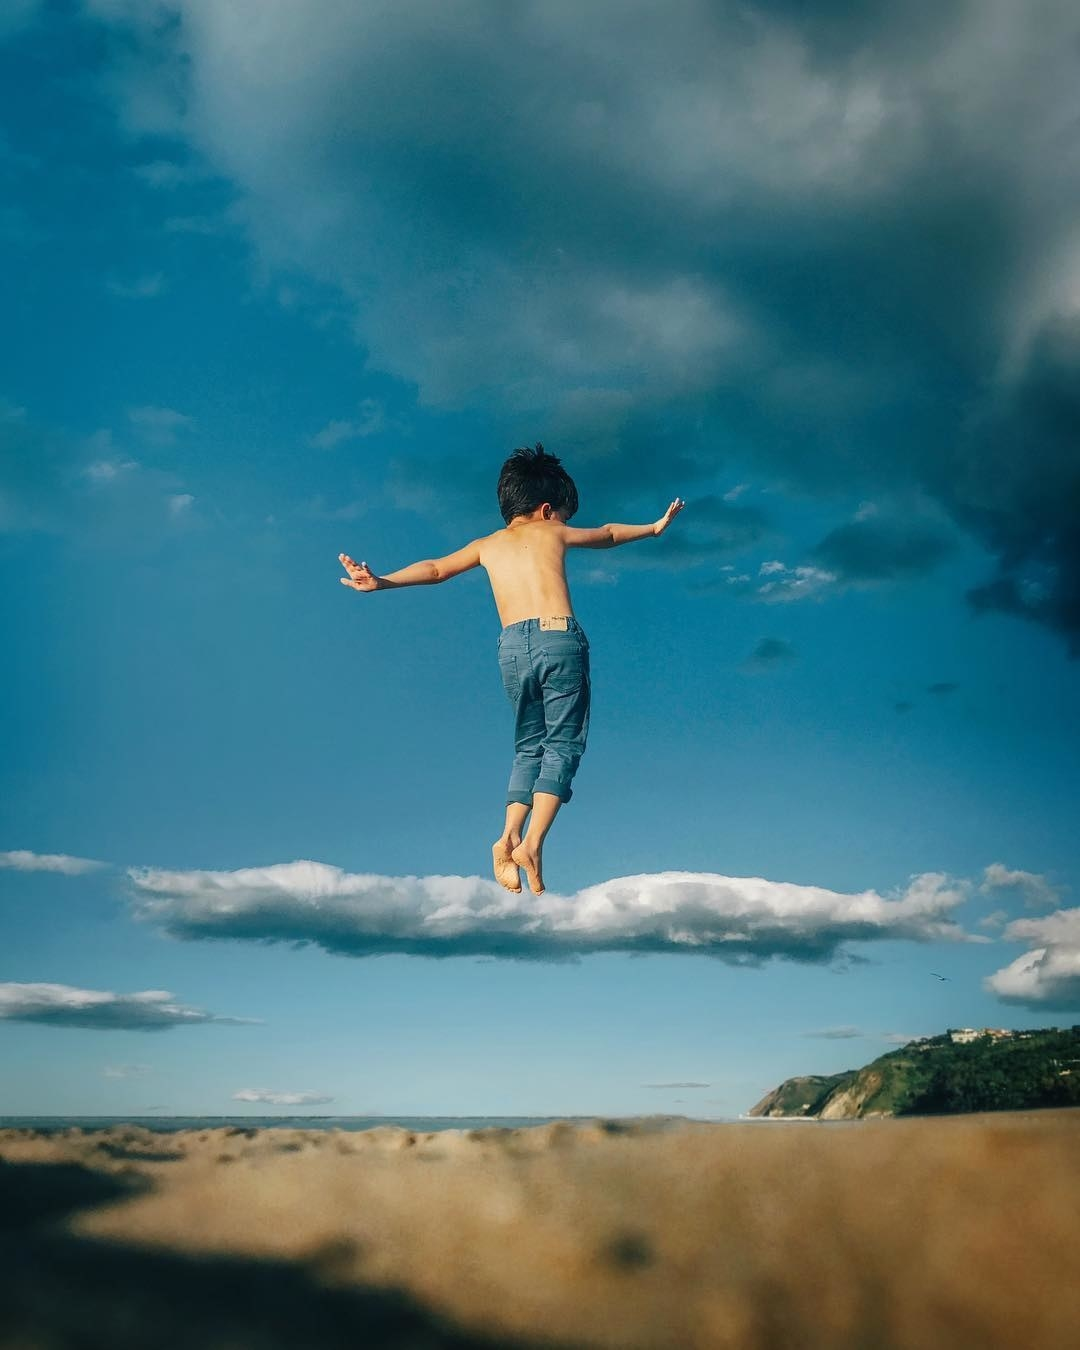 A young boy in mid-air seems to balance their tip-toes on a cloud